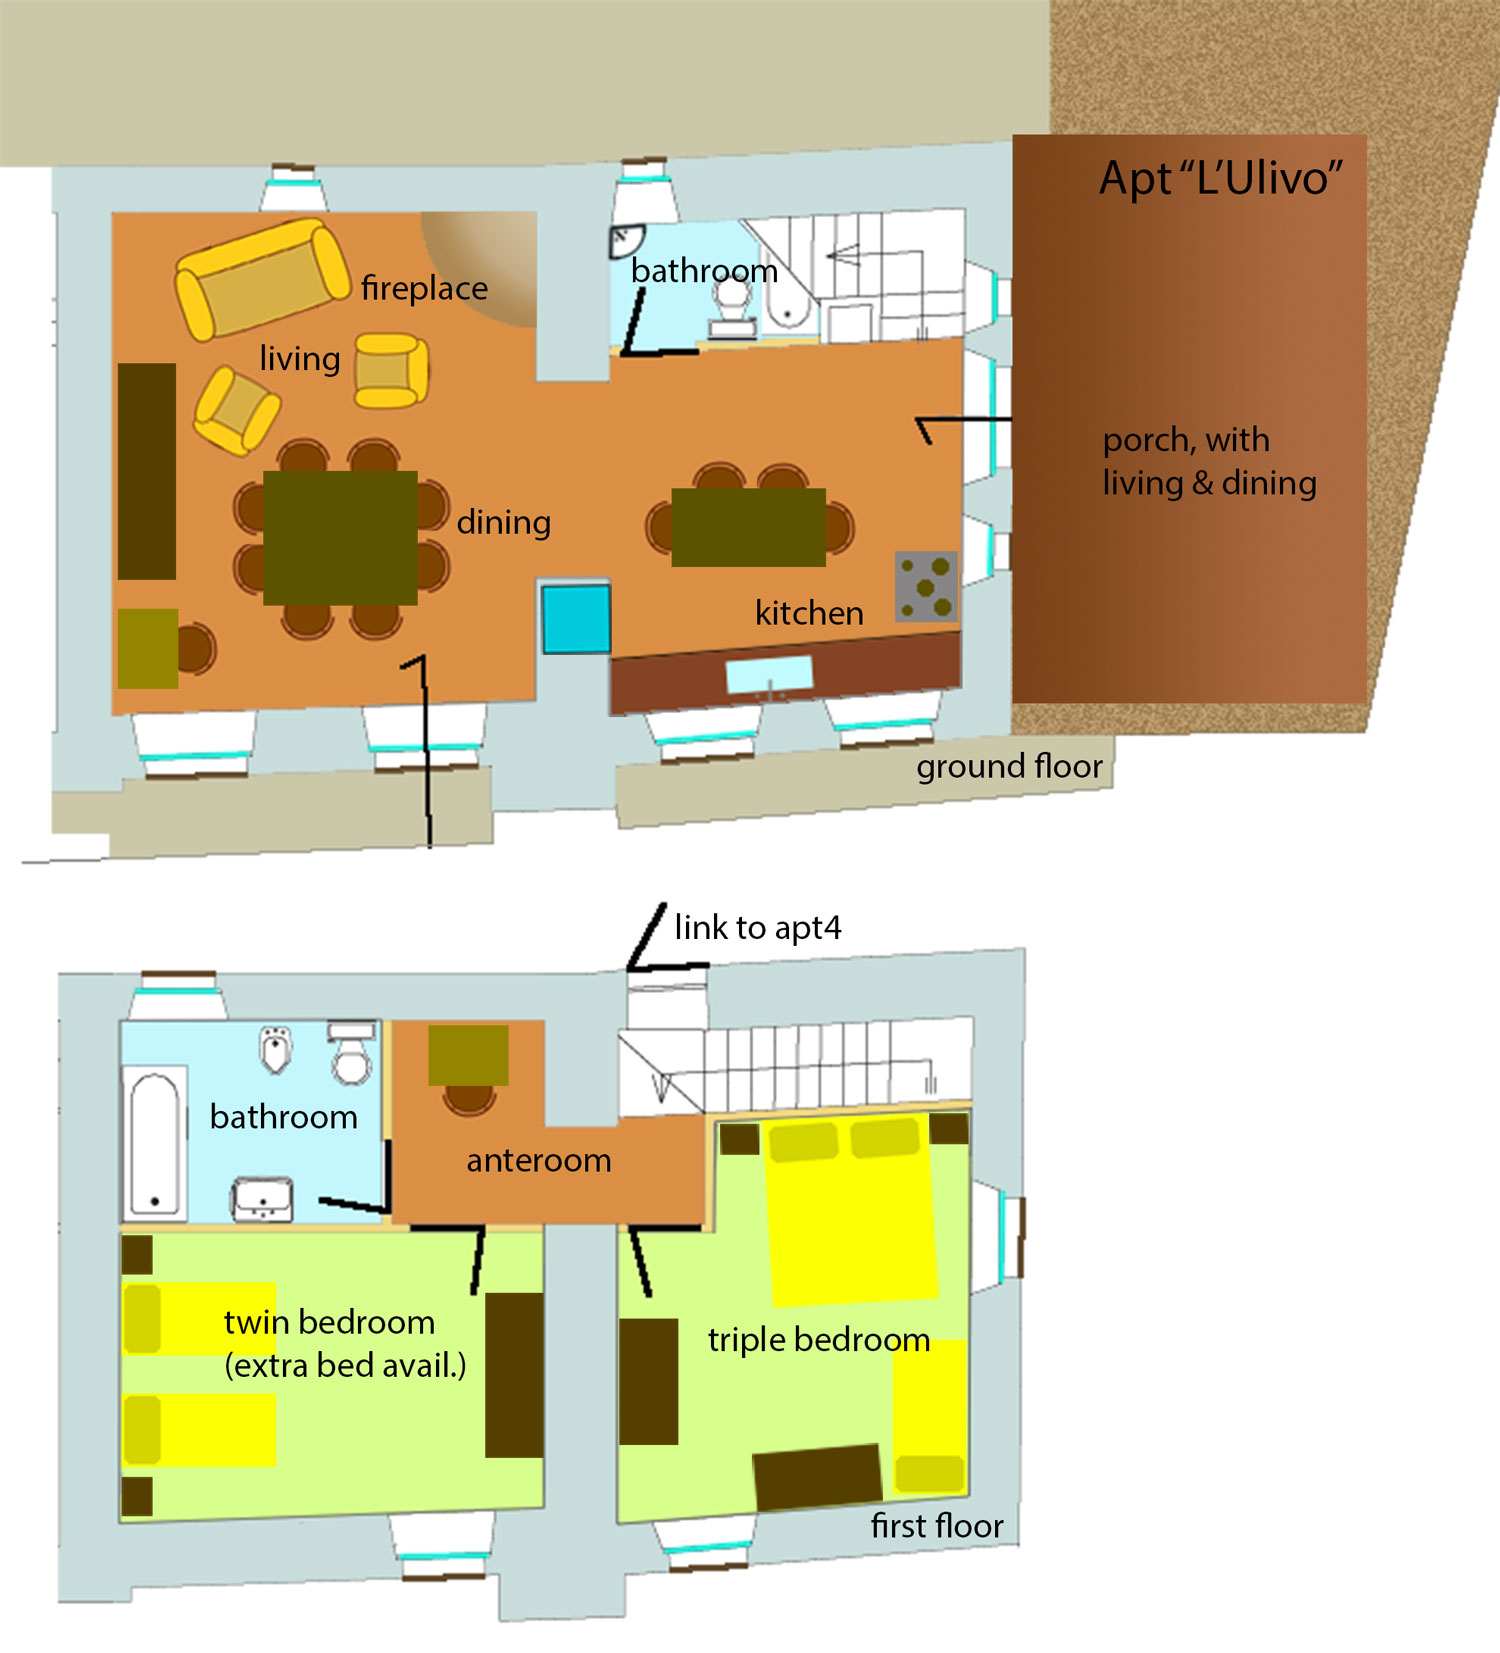 layout of the apt3 l'ulivo